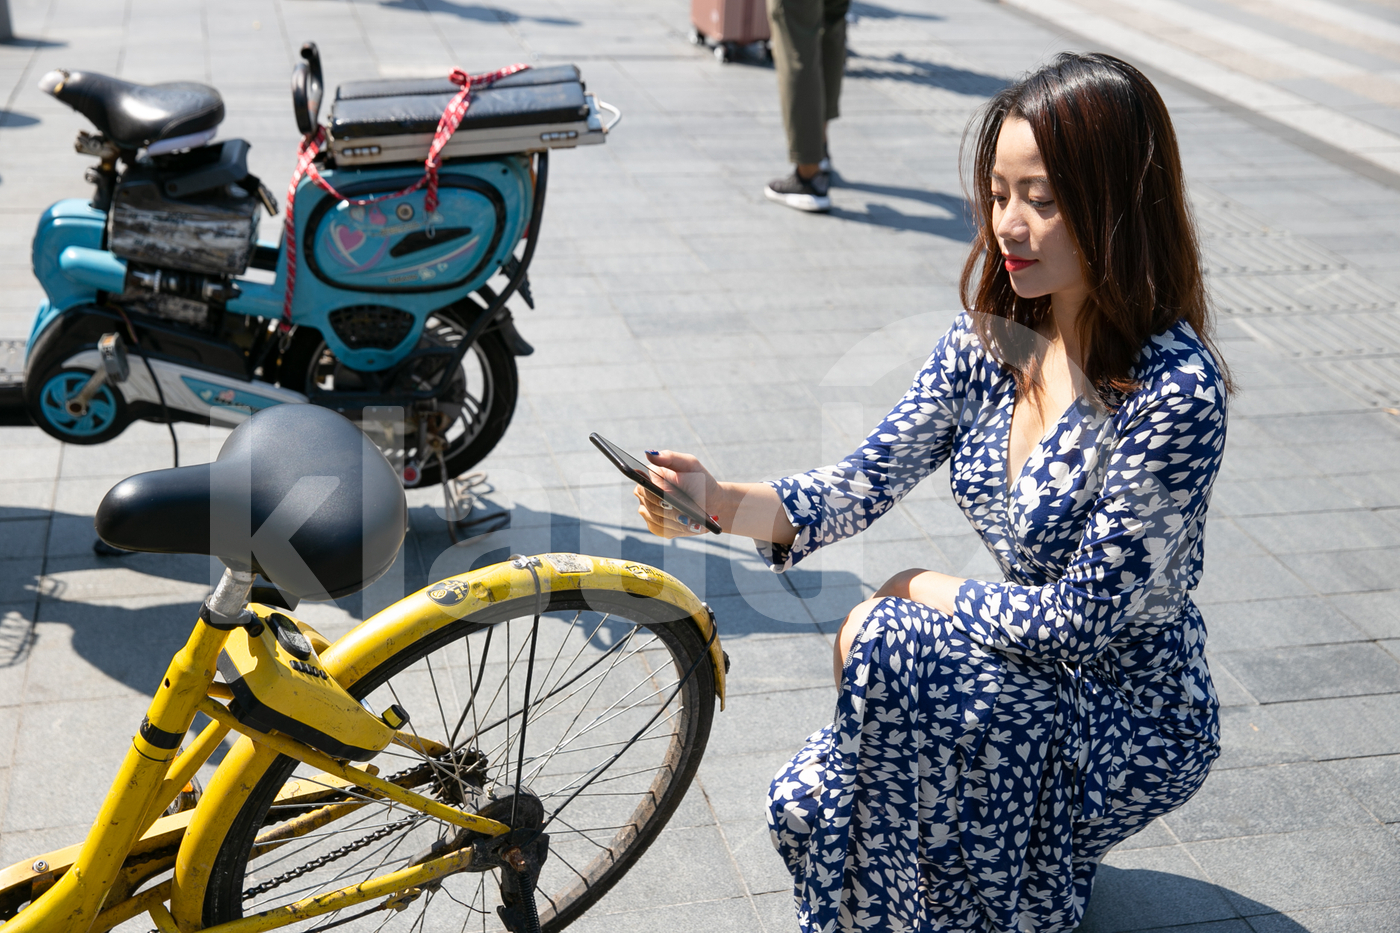 Asian woman scanning QR code to make payment for a bicycle